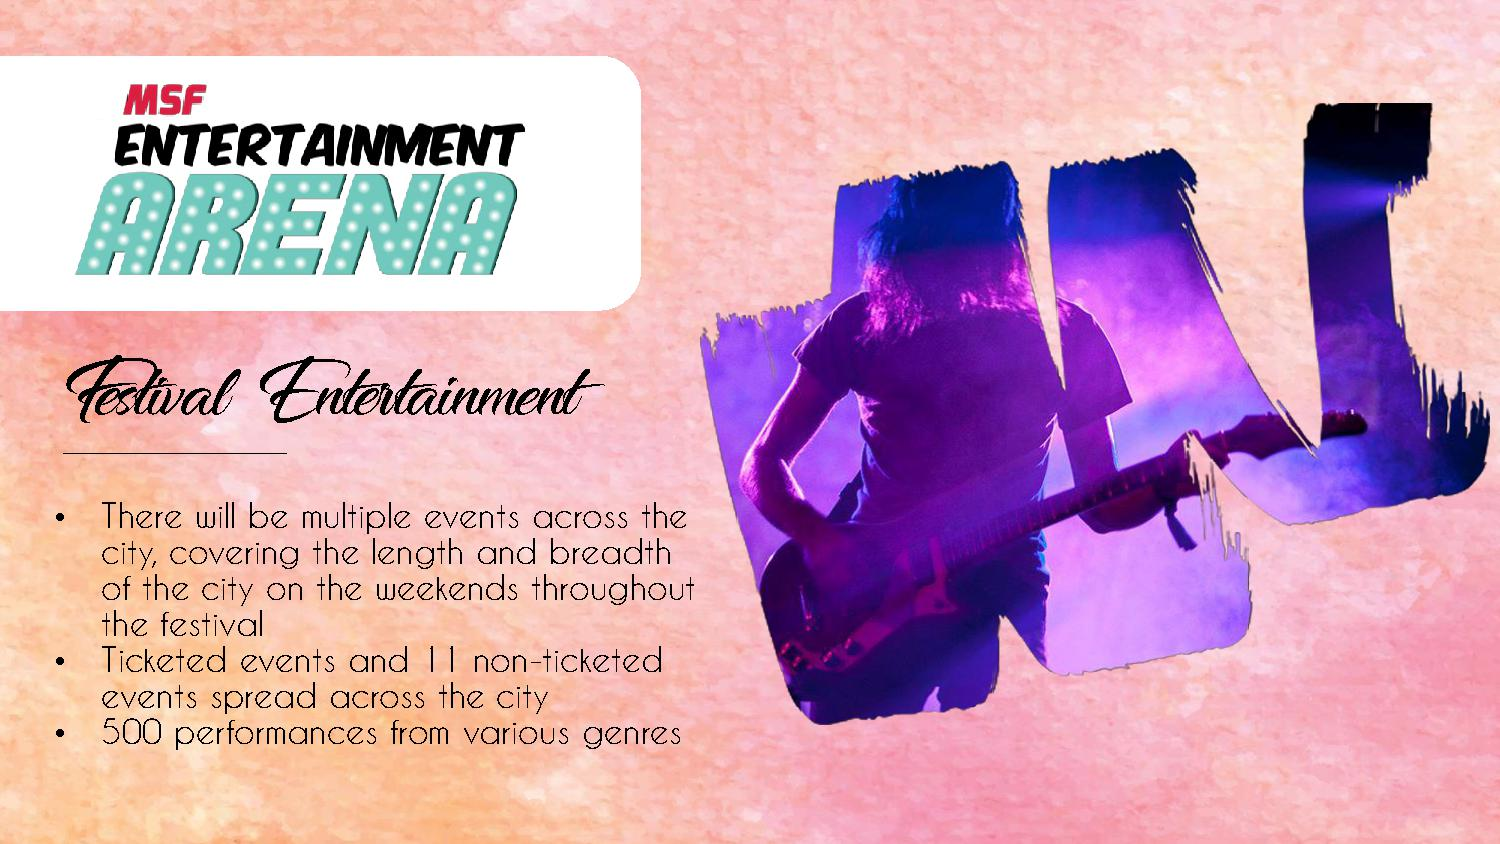 Festival Entertainment • There will be multiple events across the city, covering the length and breadth of the city on the weekends throughout the festival • Ticketed events and 11 non-ticketed events spread across the city • 500 performances from various genres